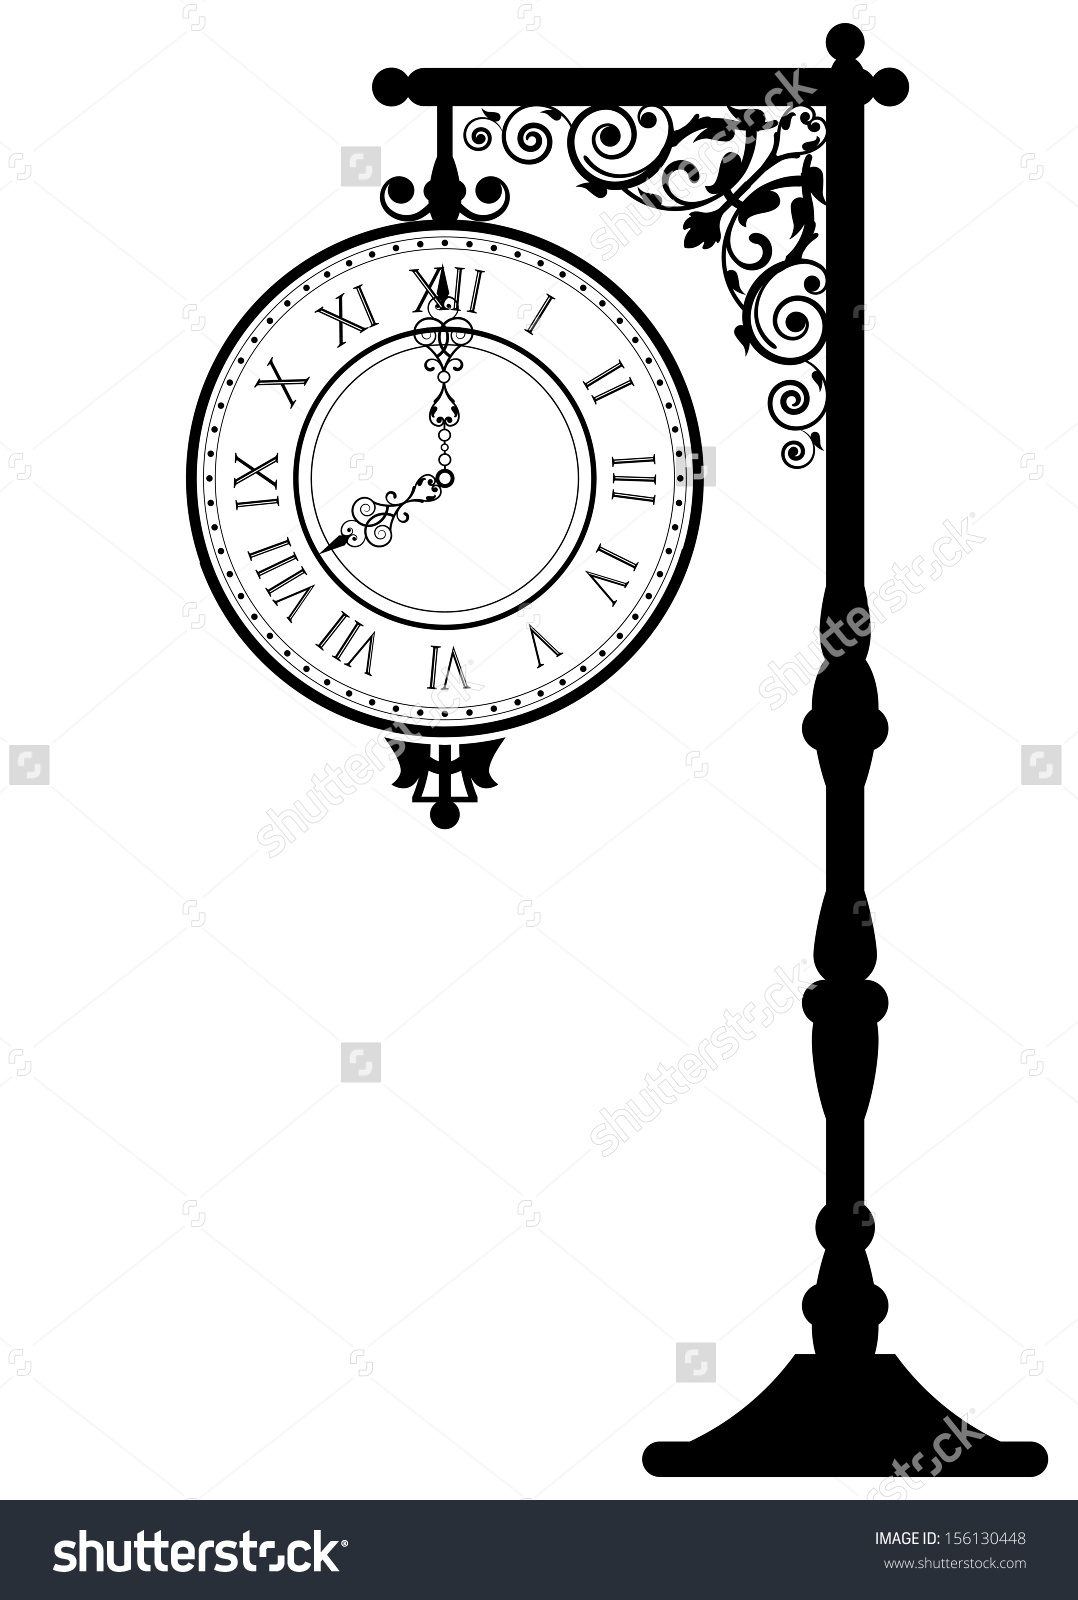 Vector Illustration Vintage Street Clock Stock Vector 156130448.